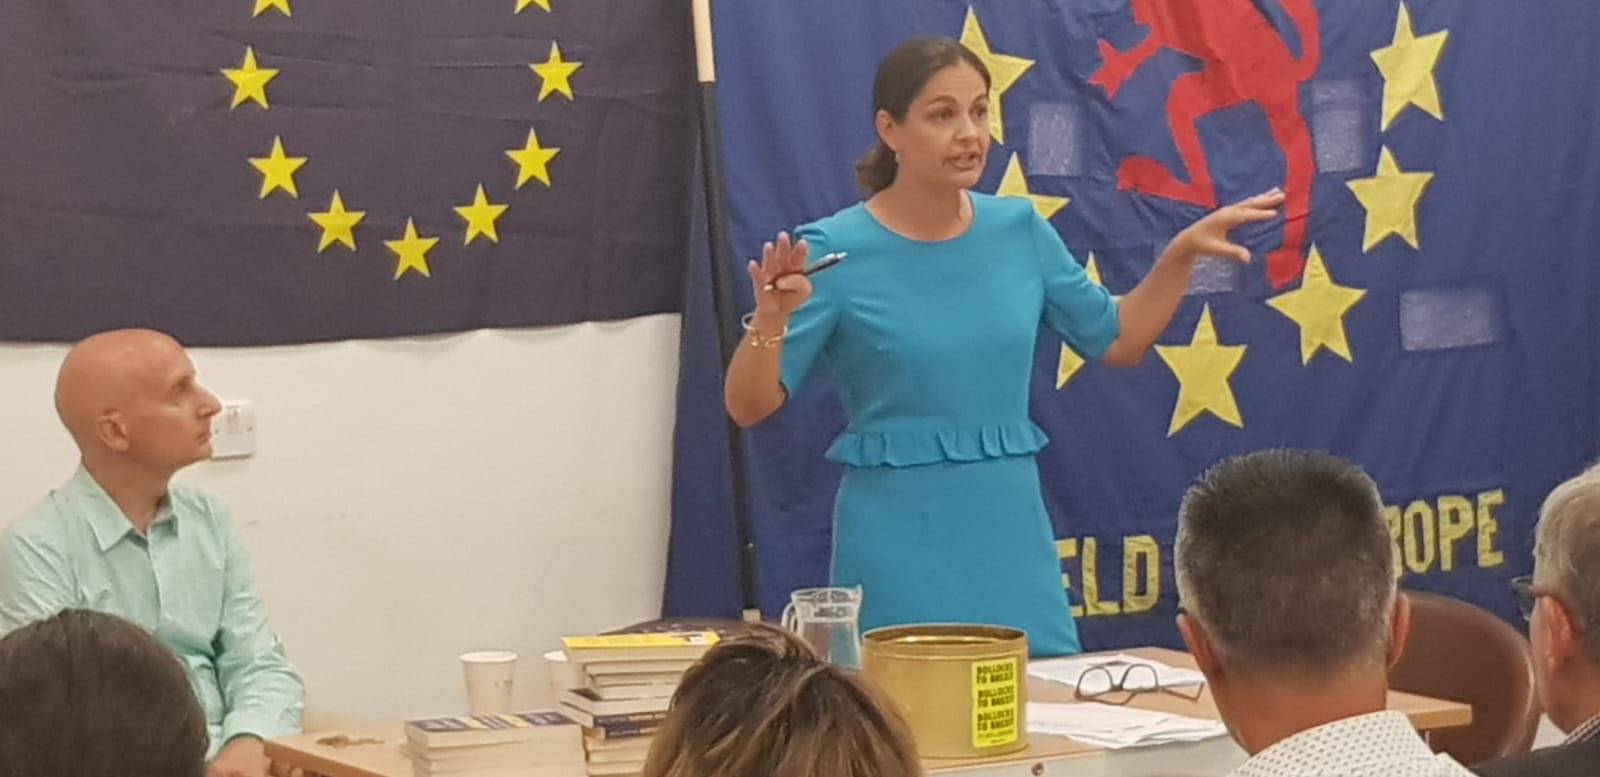 Siobhan Benita addressing a public meeting in Enfield alongide Lord Adonis